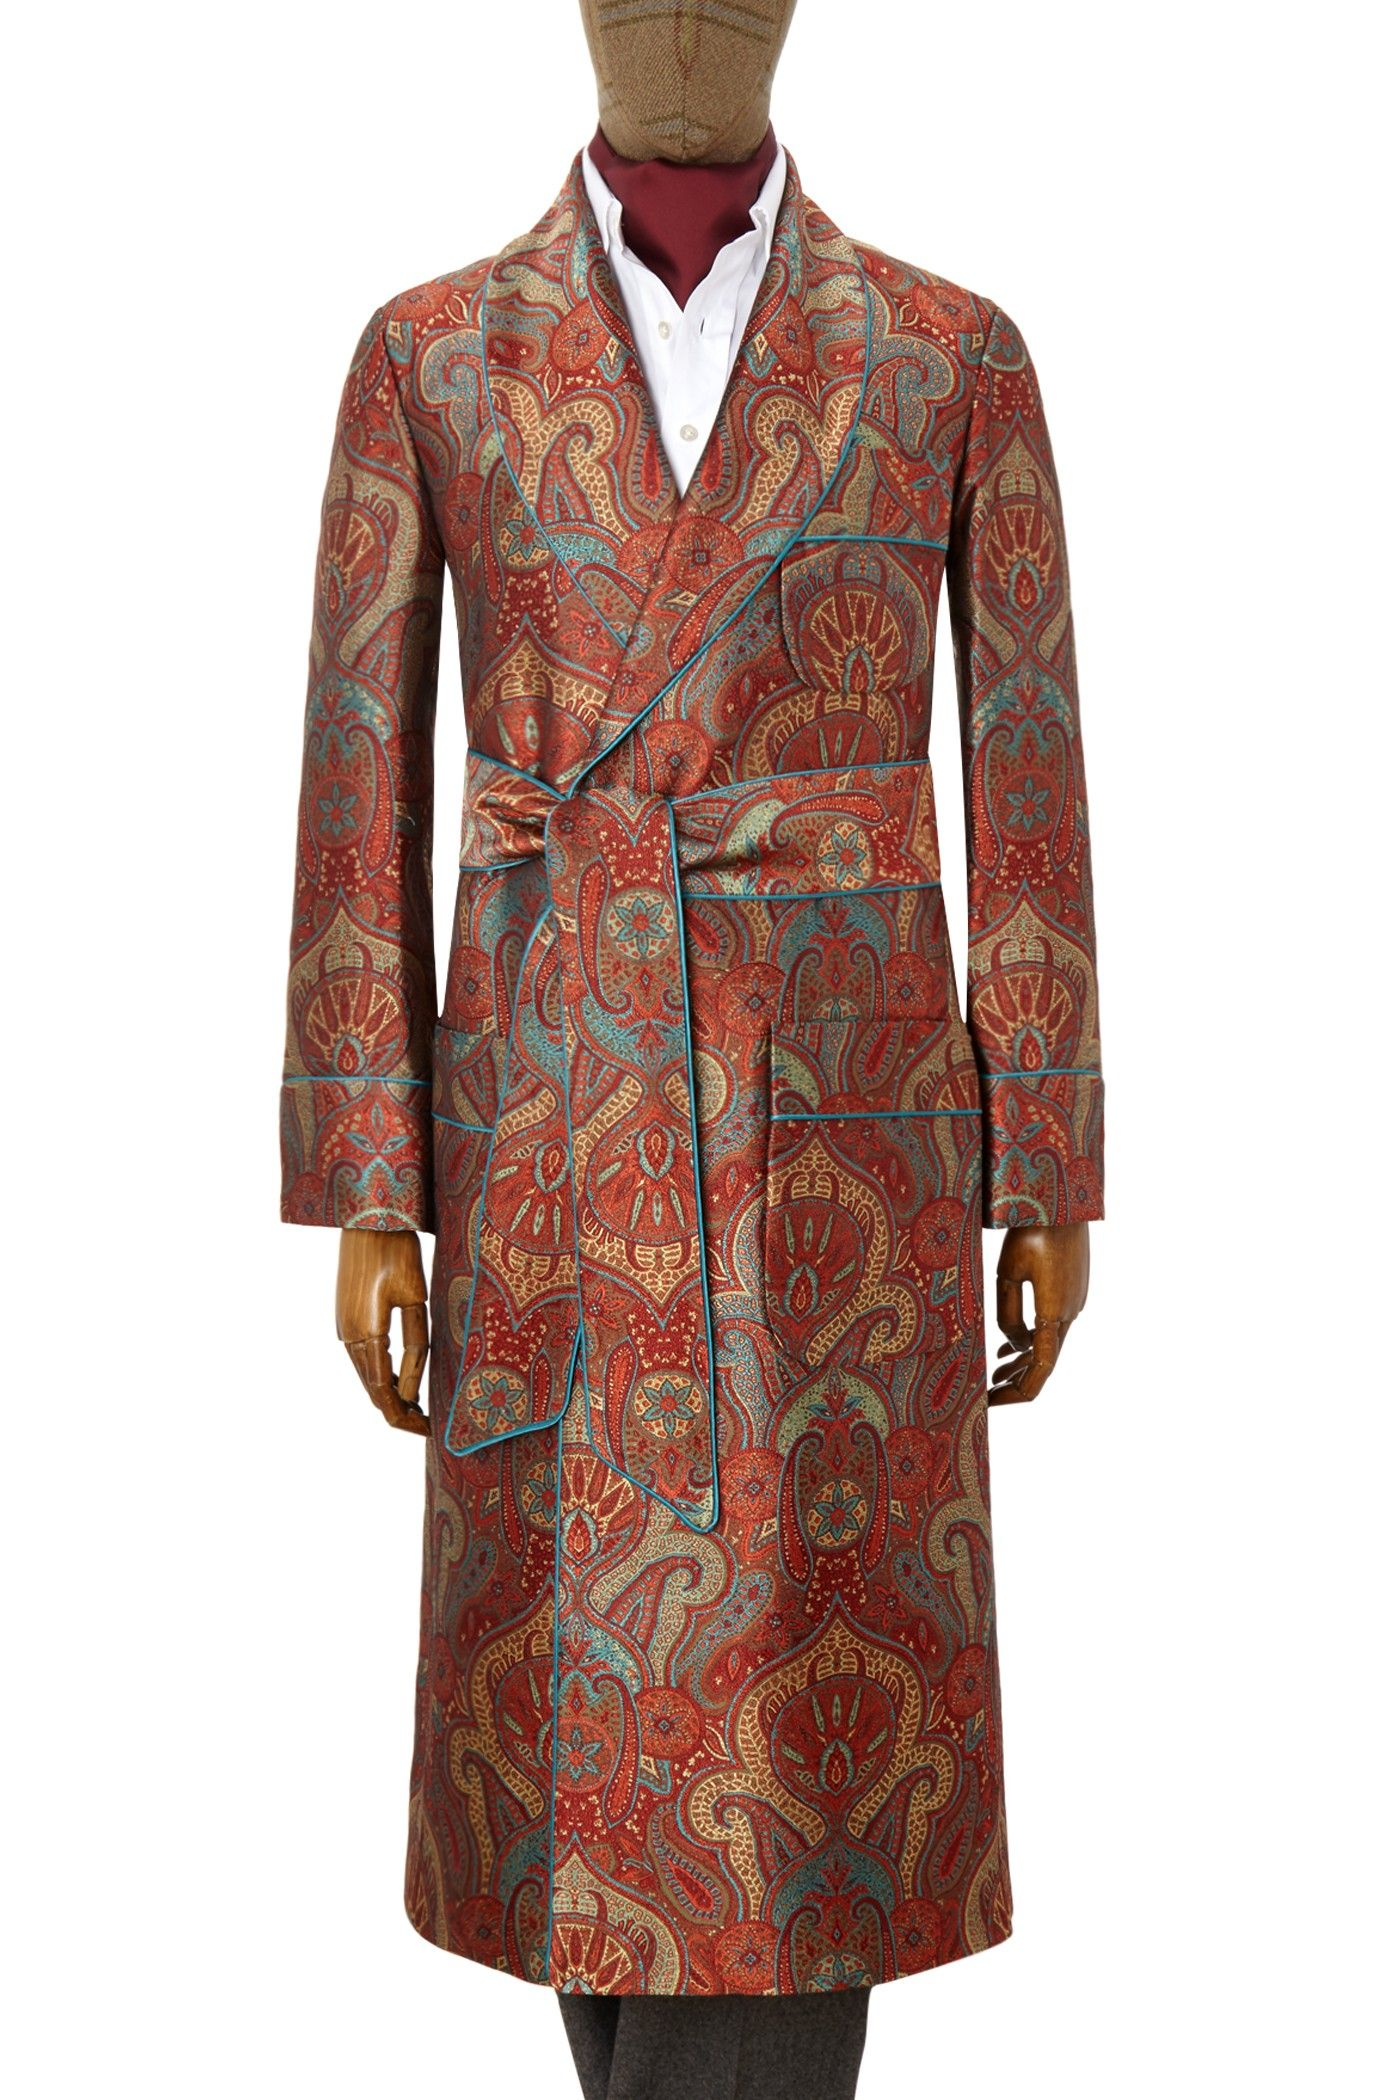 p><p>Handmade in England, the richly coloured silk brocade of this ...